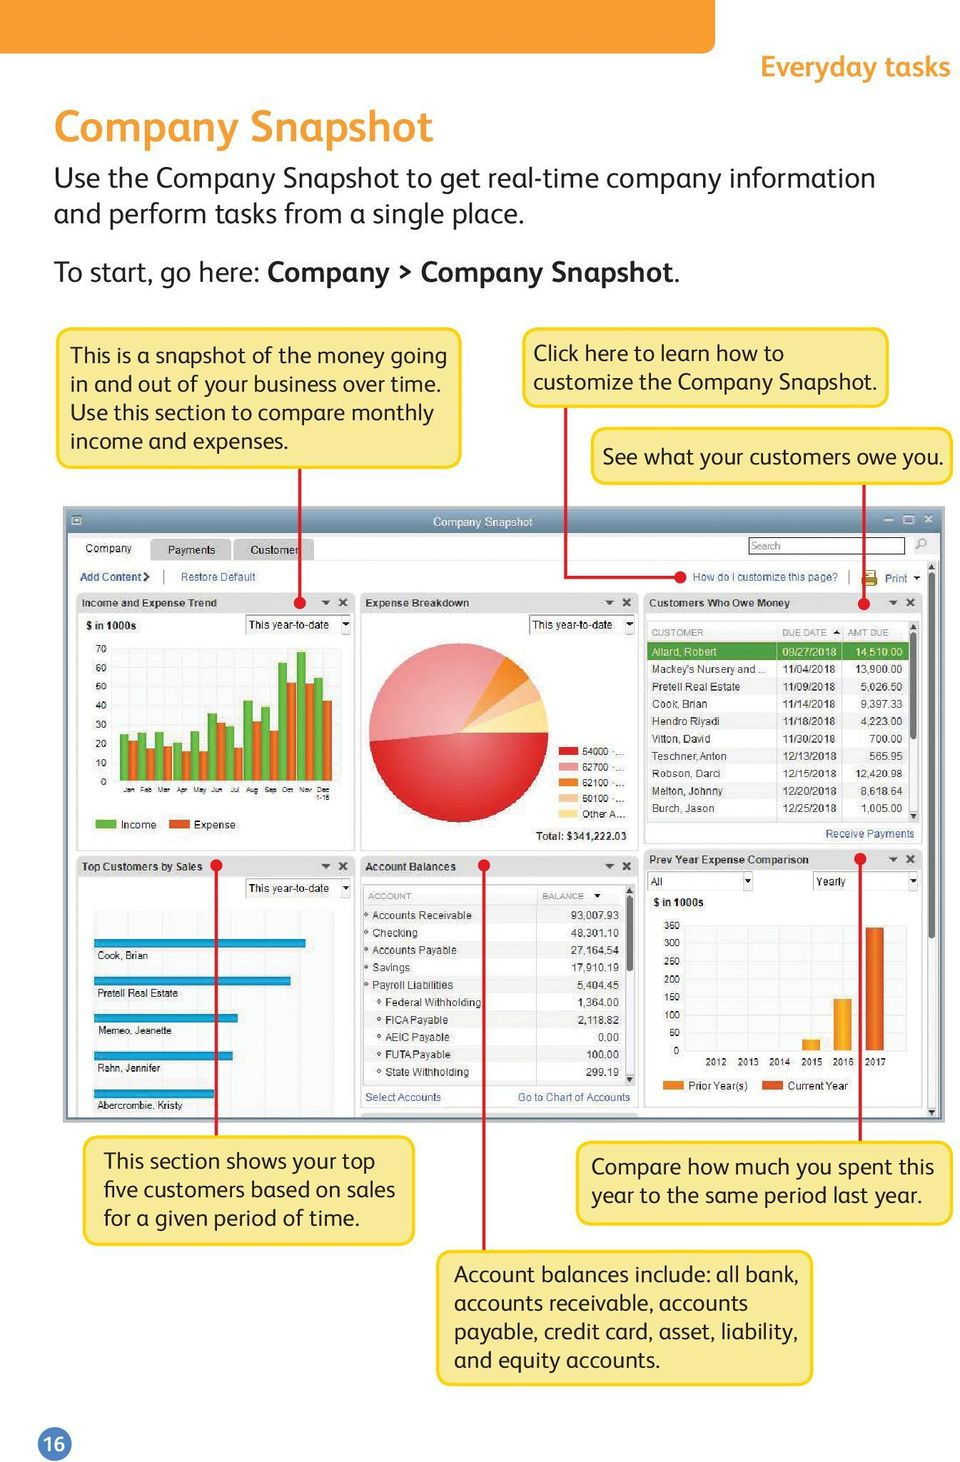 Use this section to compare monthly income and expenses. Click here to learn how to customize the Company Snapshot. See what your customers owe you.